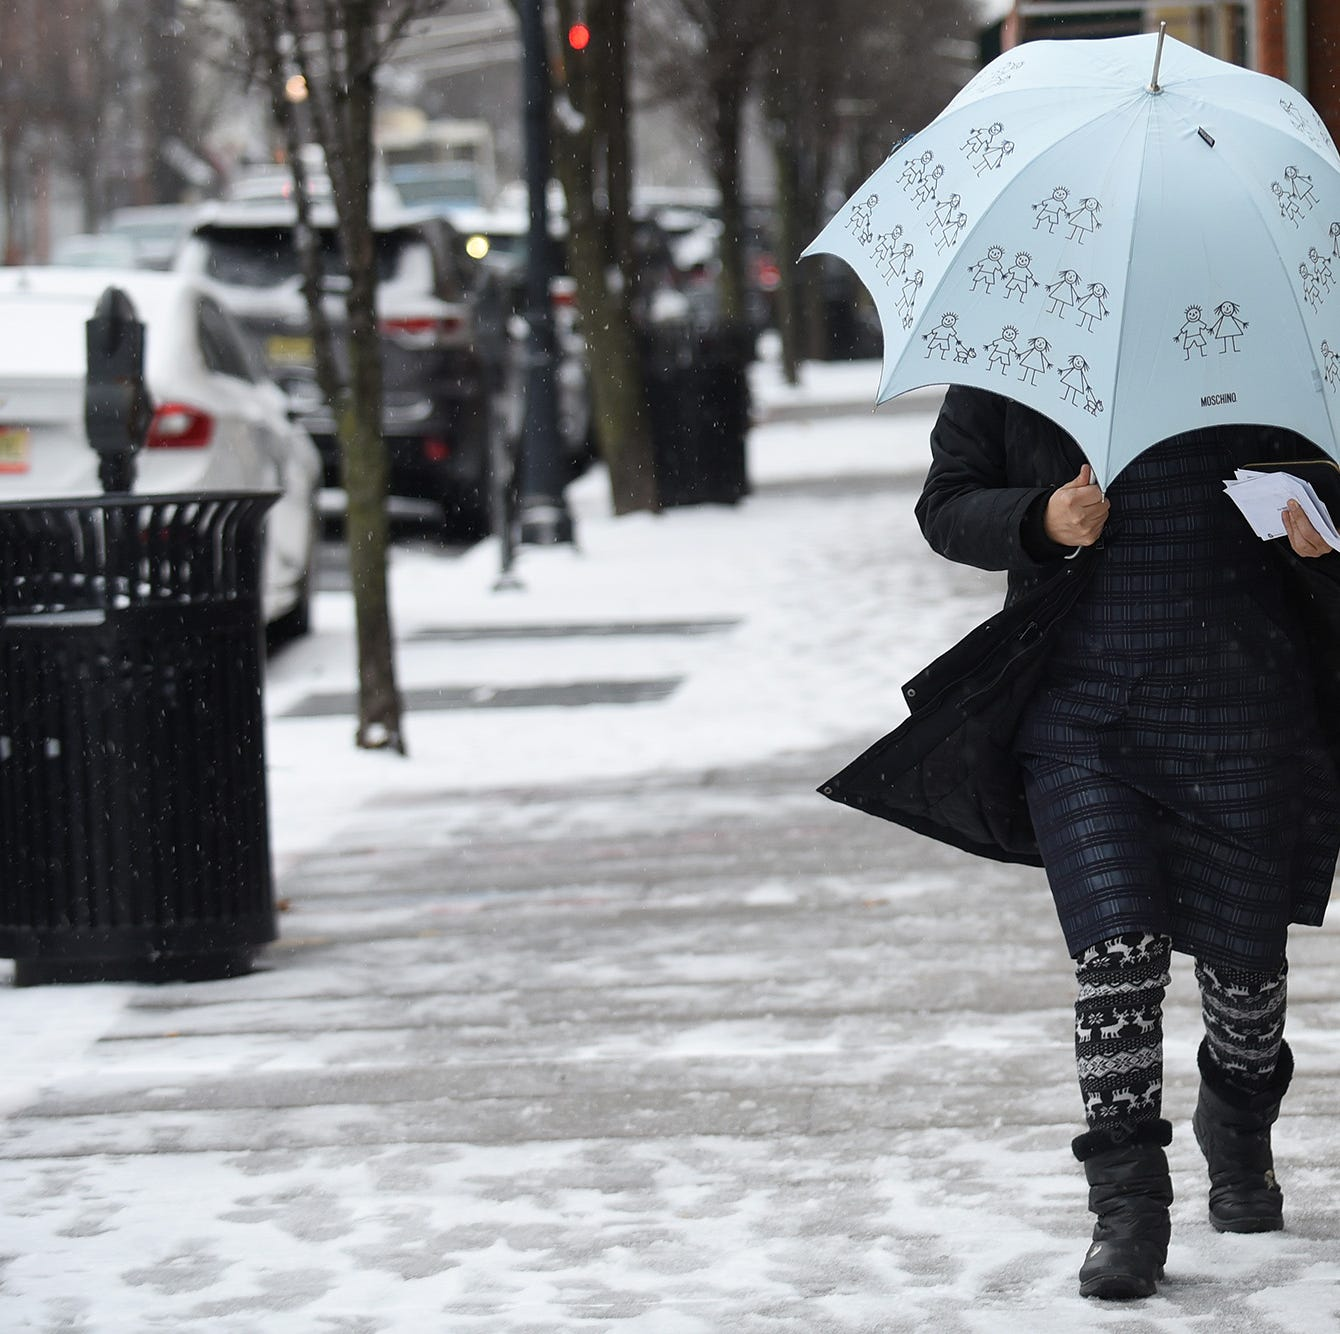 NJ weather: What time should I leave work before the snow?